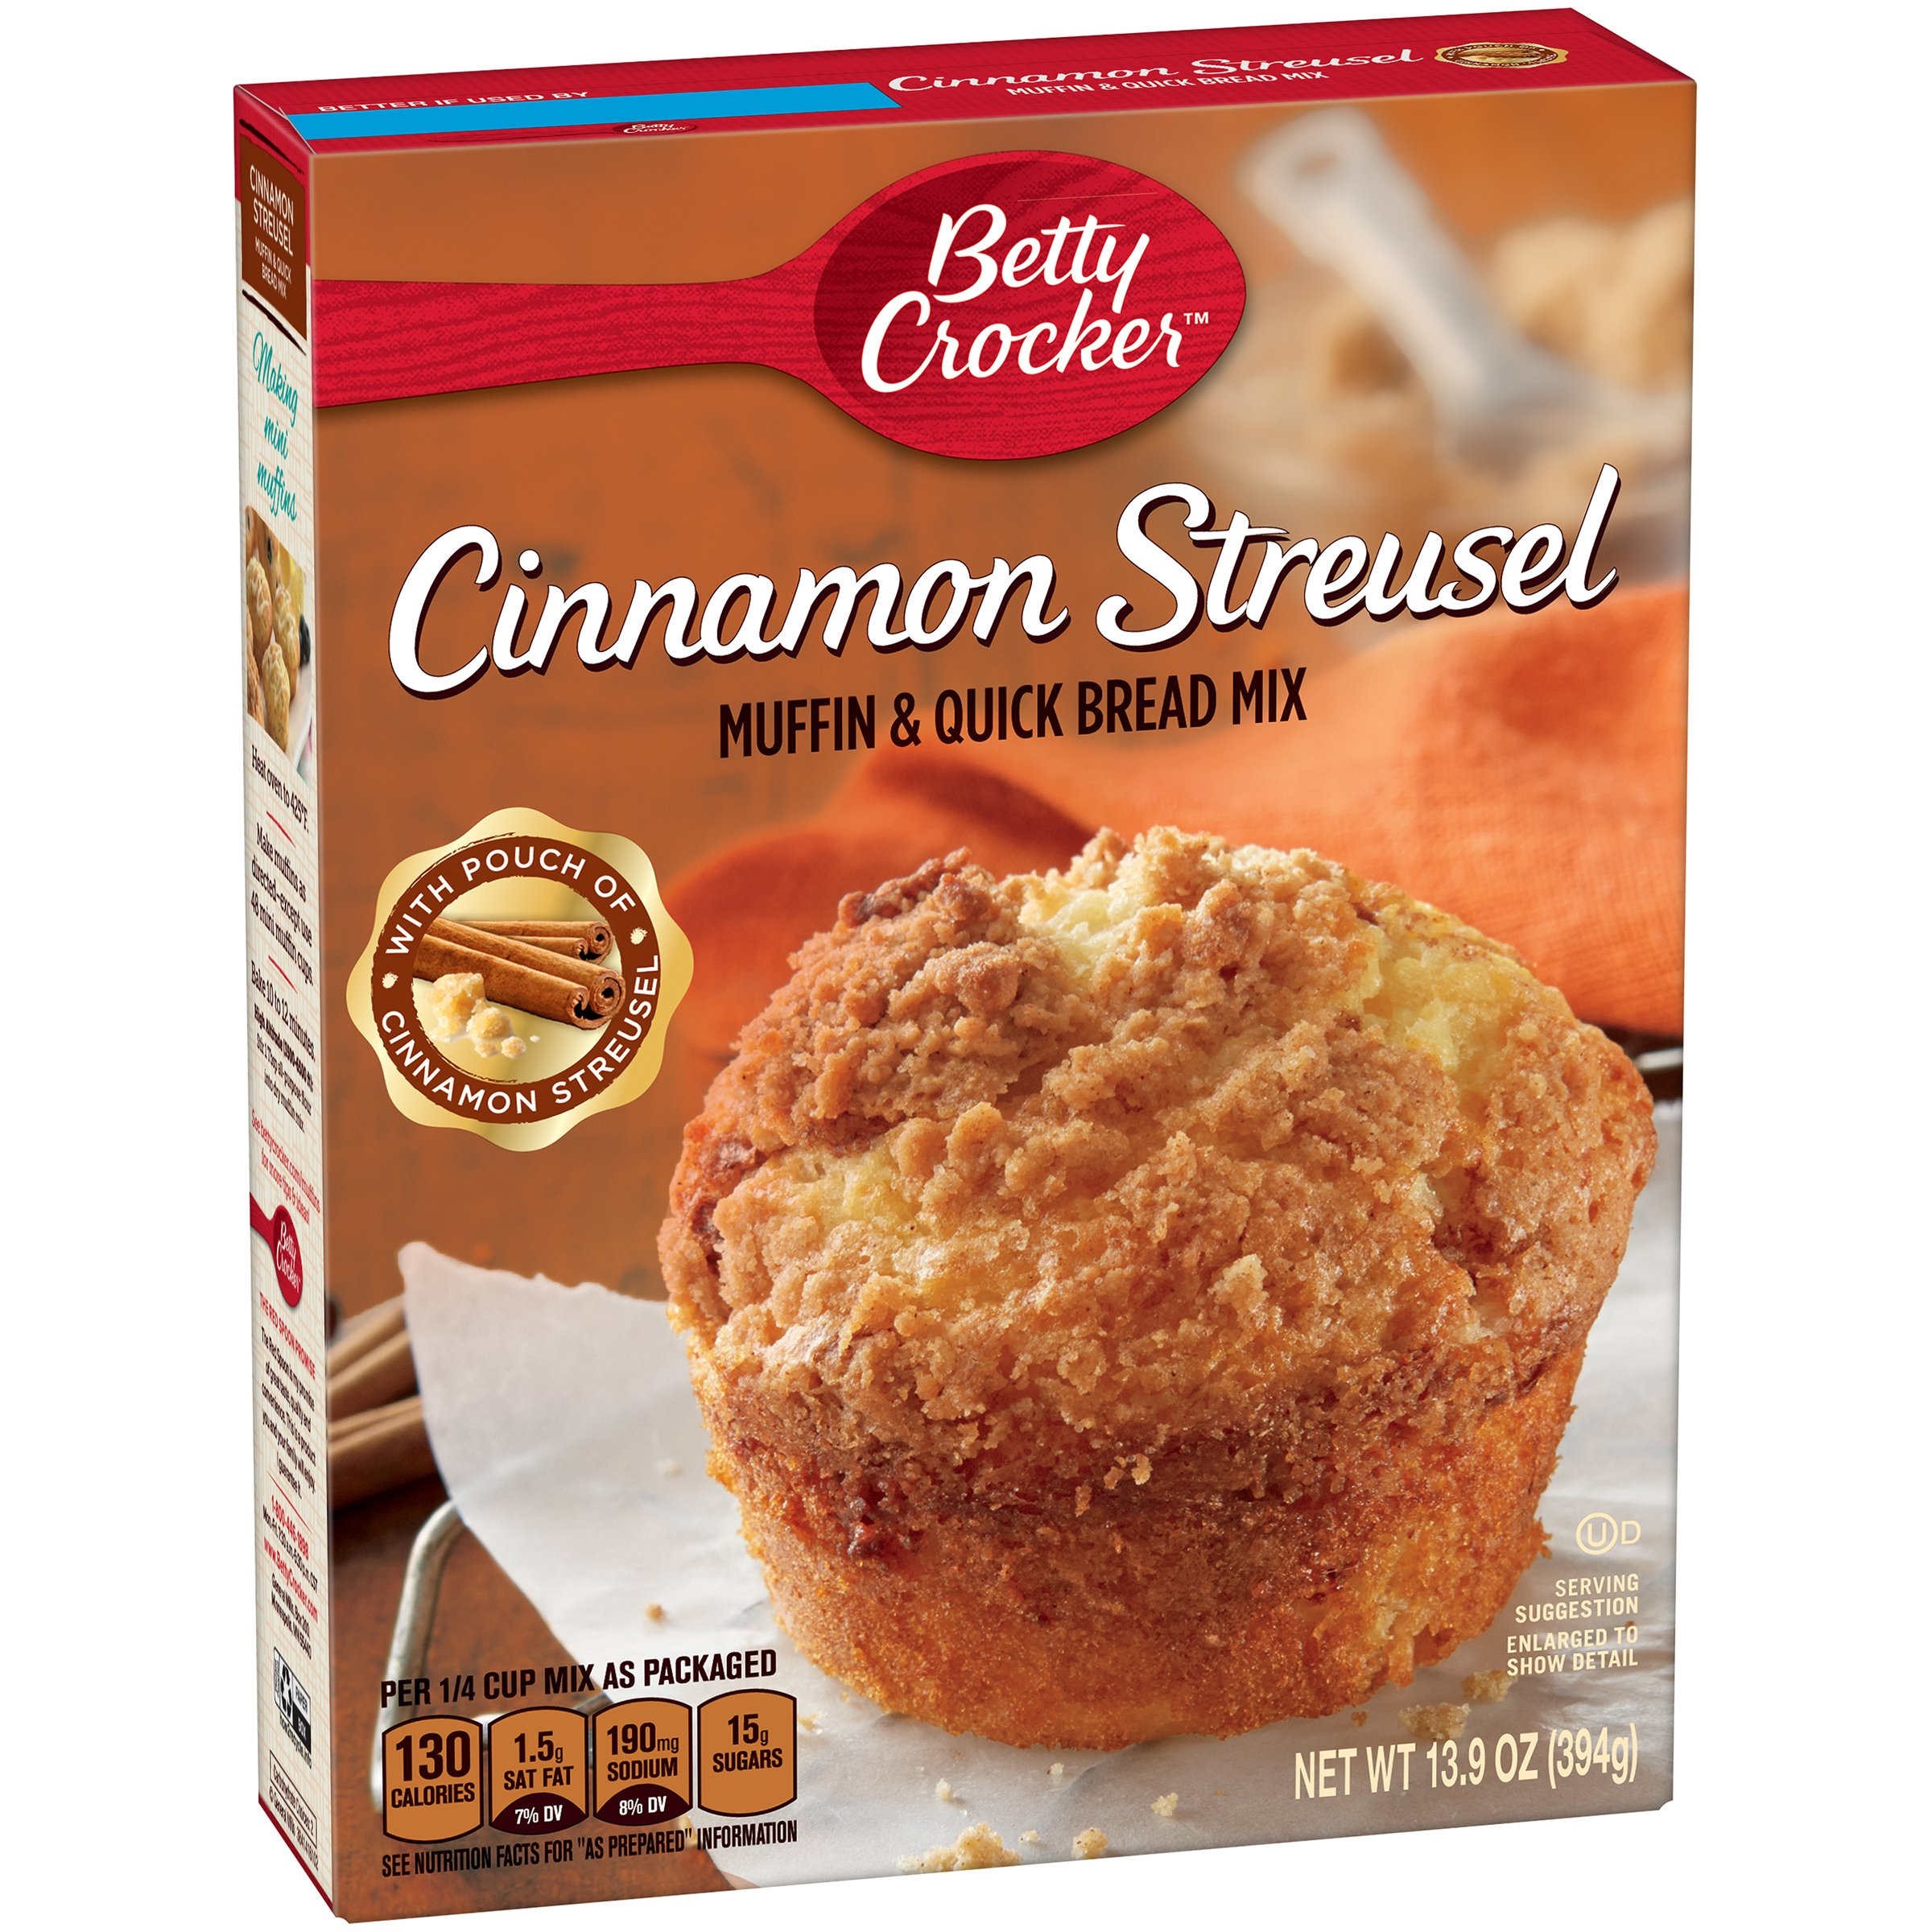 Betty Crocker Baking Mix, Muffin & Quick Bread Mix, Cinnamon Streusel, 13.9 Oz Box (Pack of 12) by Betty Crocker